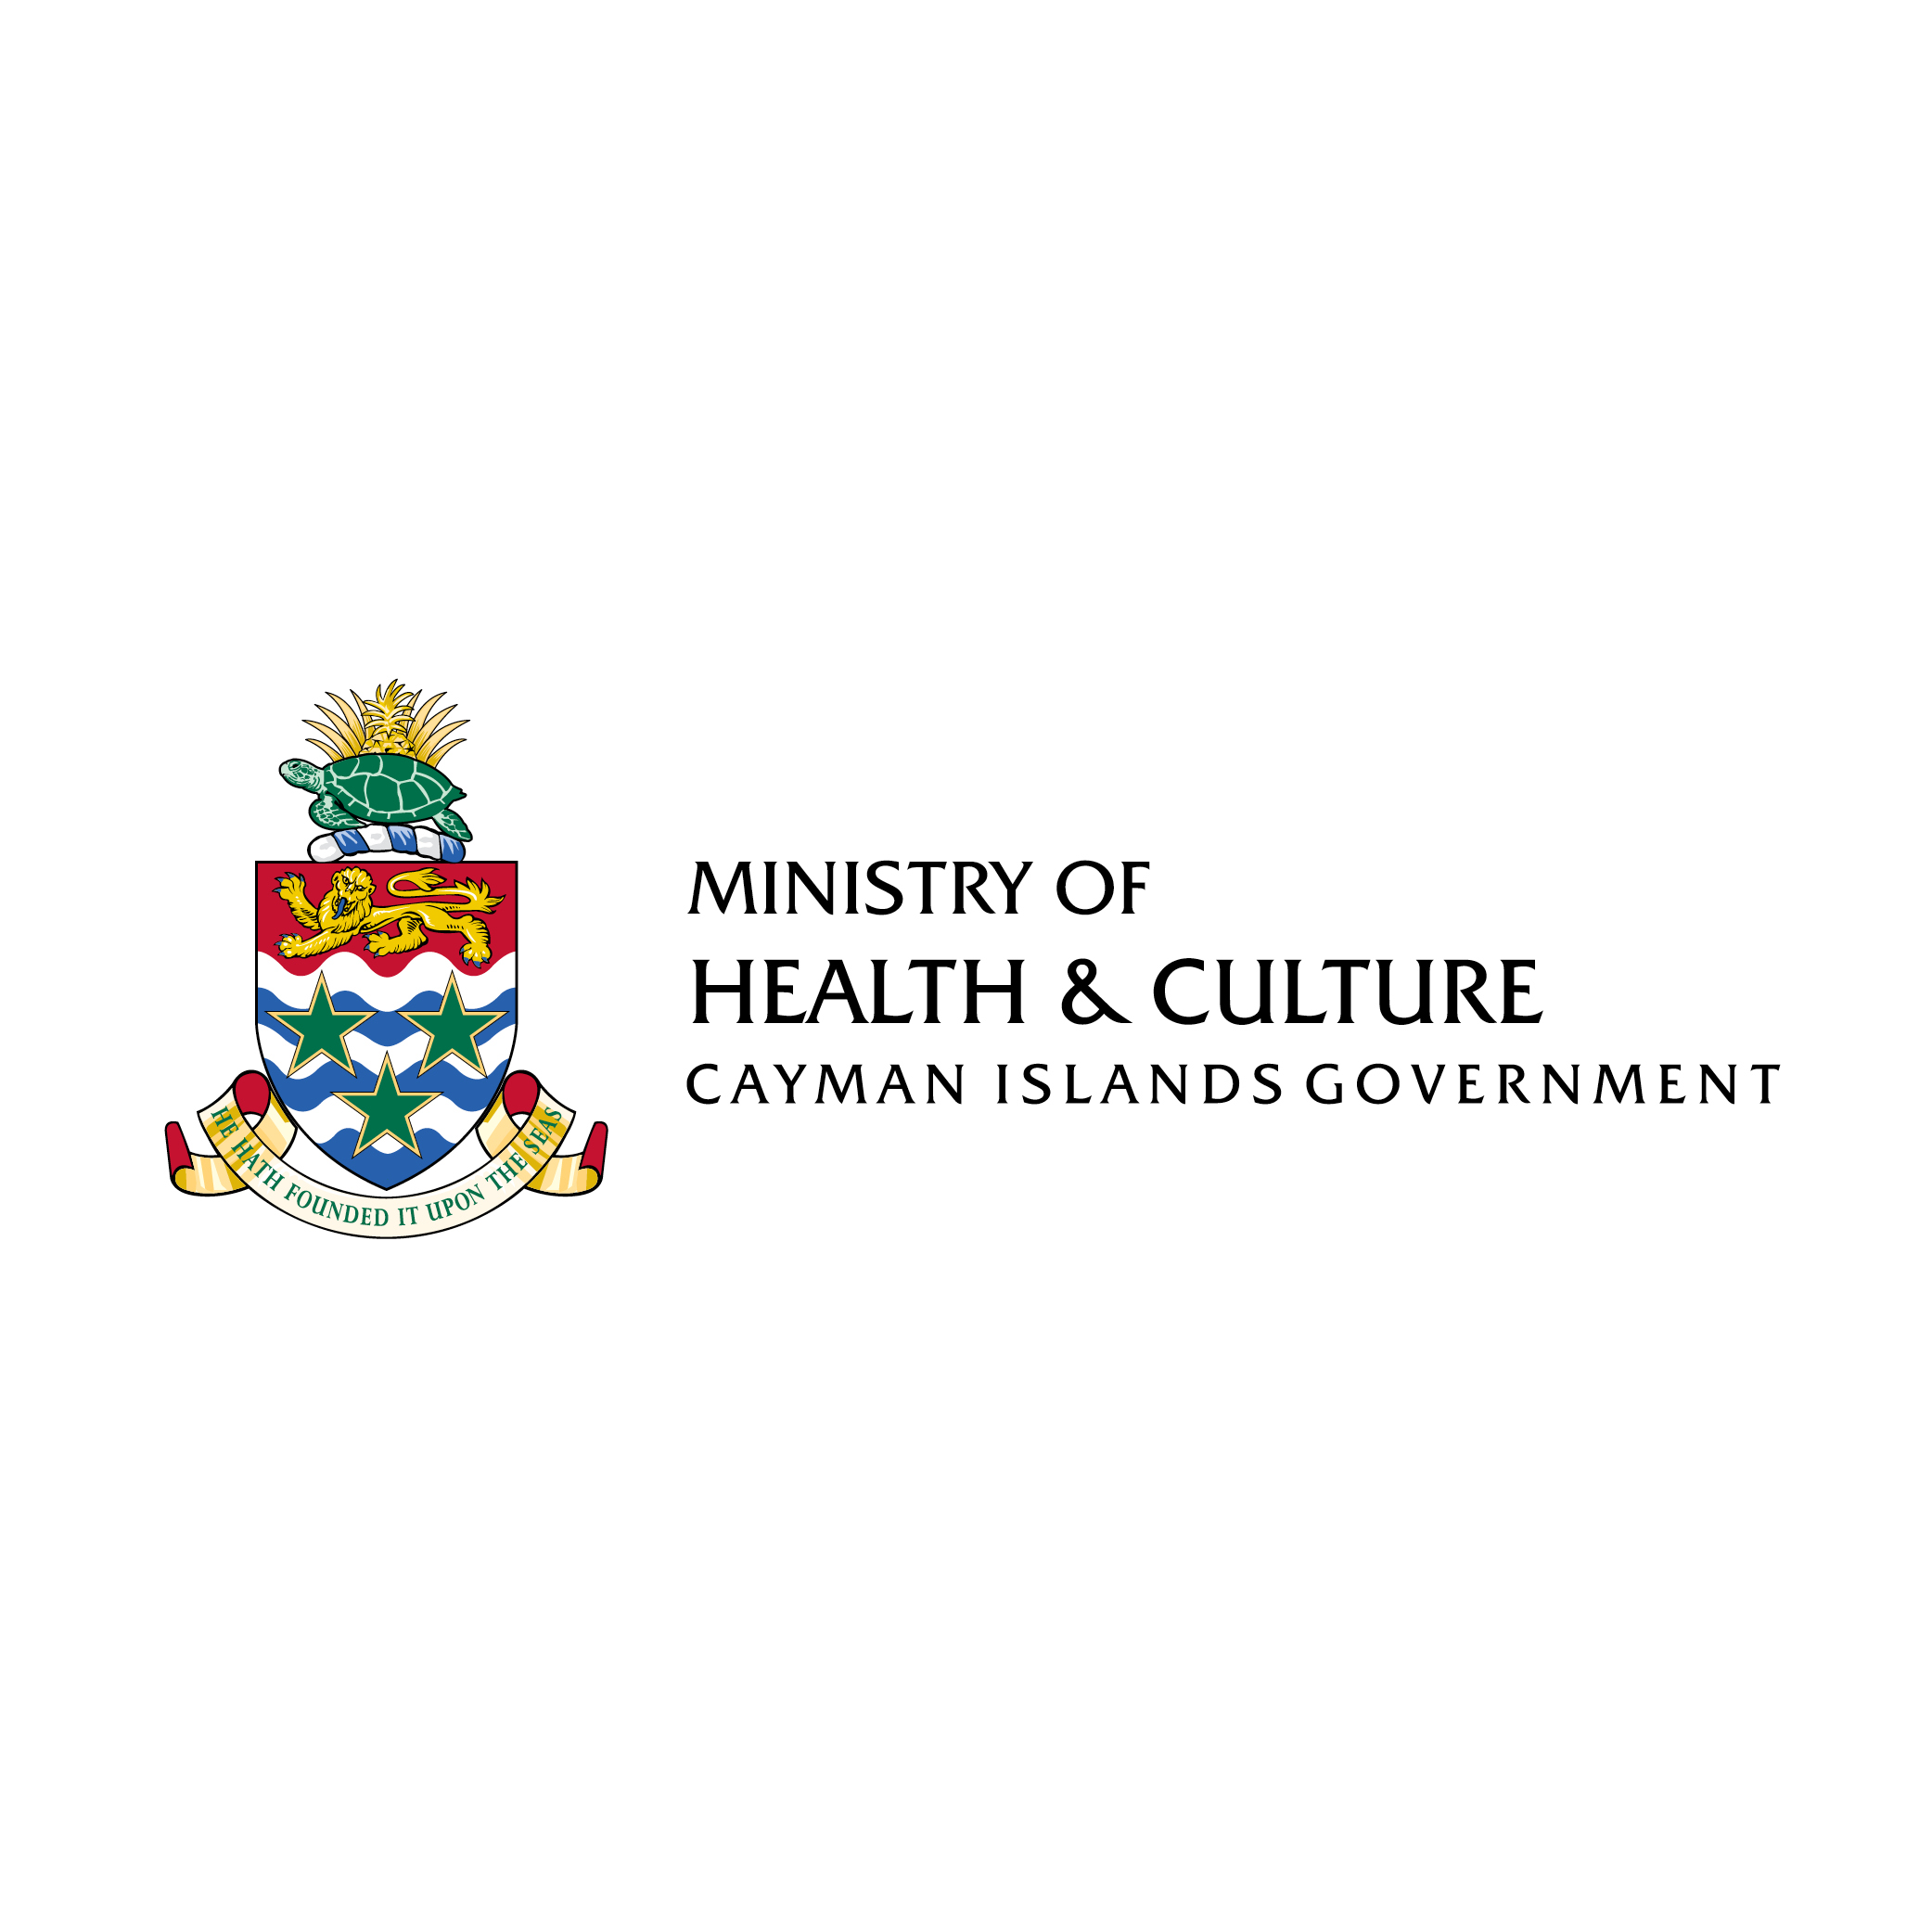 Ministry of Health & Culture